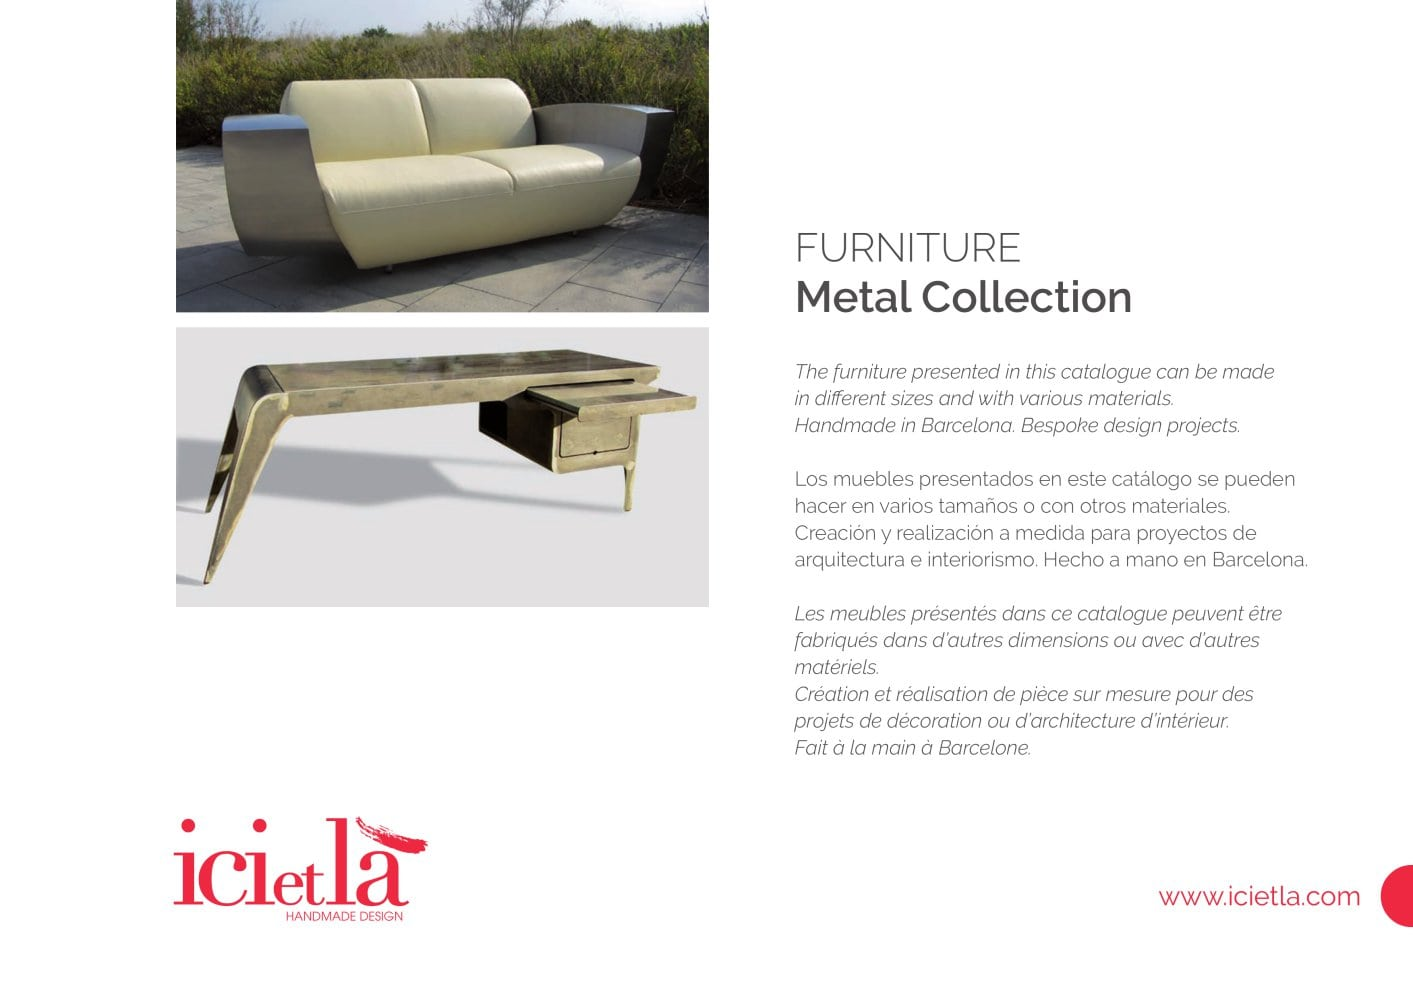 ici furniture. ICI ET LÀ - Metal Furniture Collection 2016 1 / 78 Pages Ici Catalogues Archiexpo